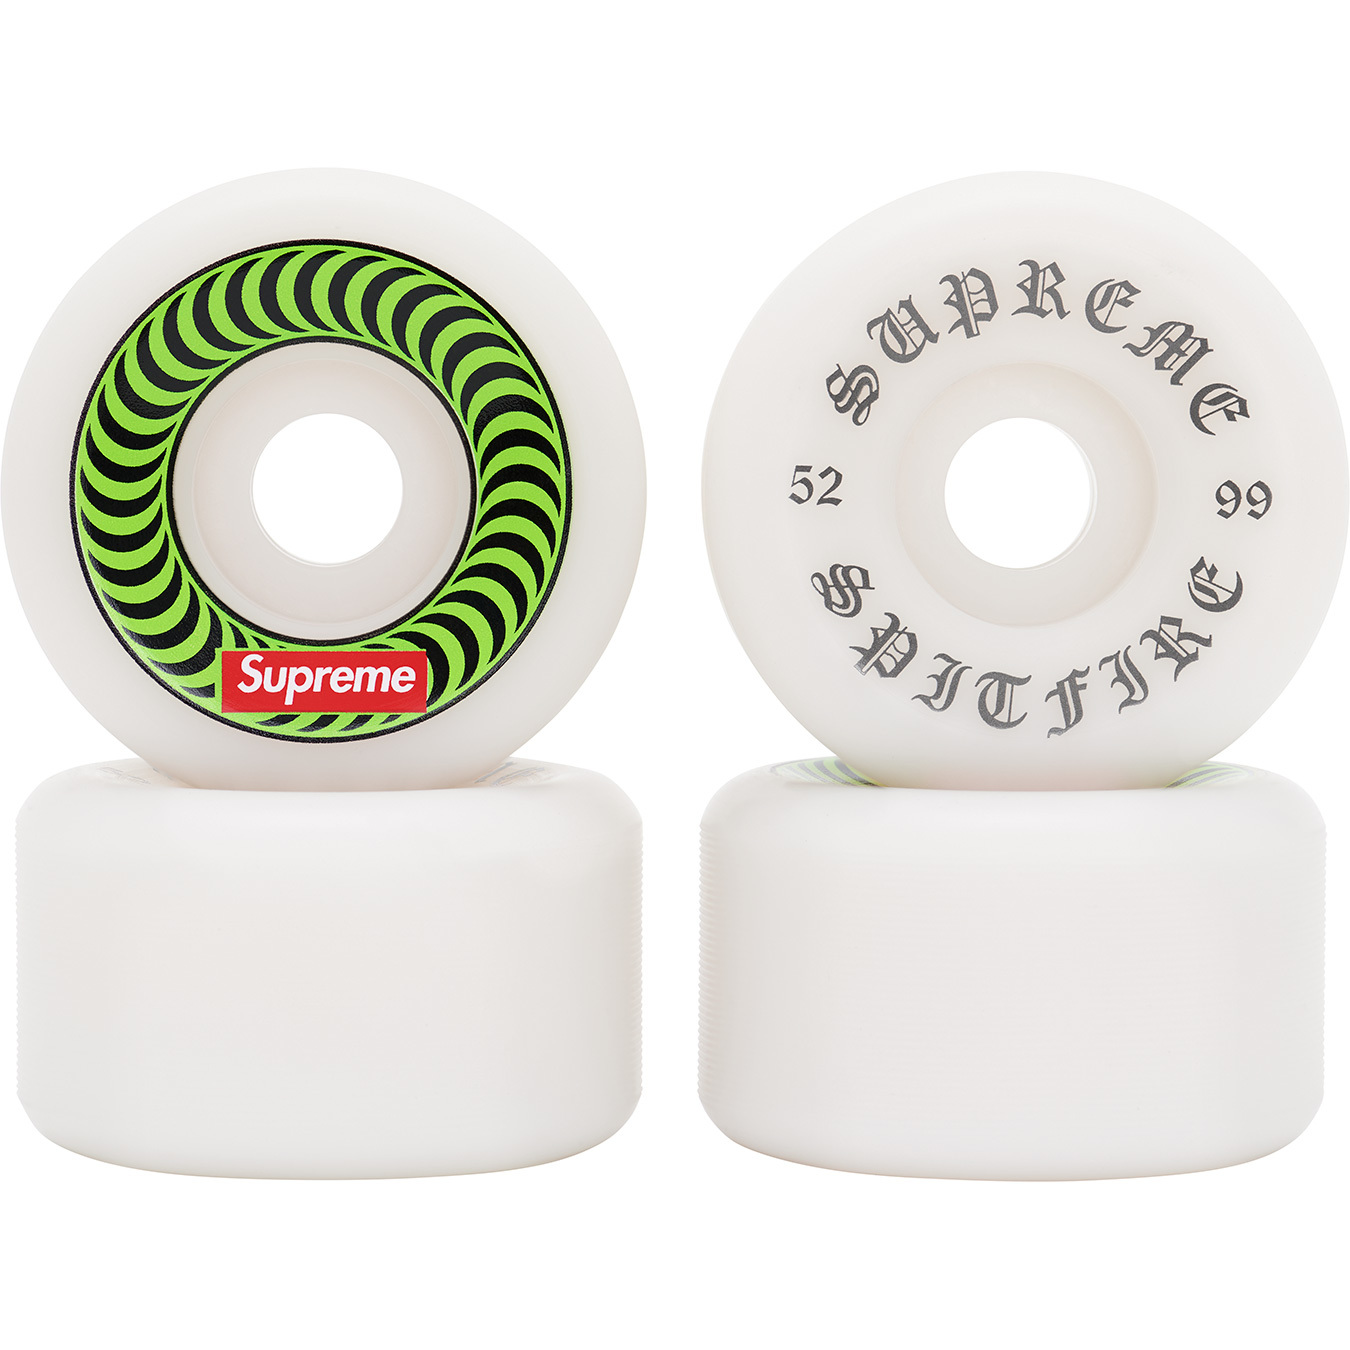 supreme-19aw-19fw-fall-winter-supreme-spitfire-og-classic-wheels-set-of-4